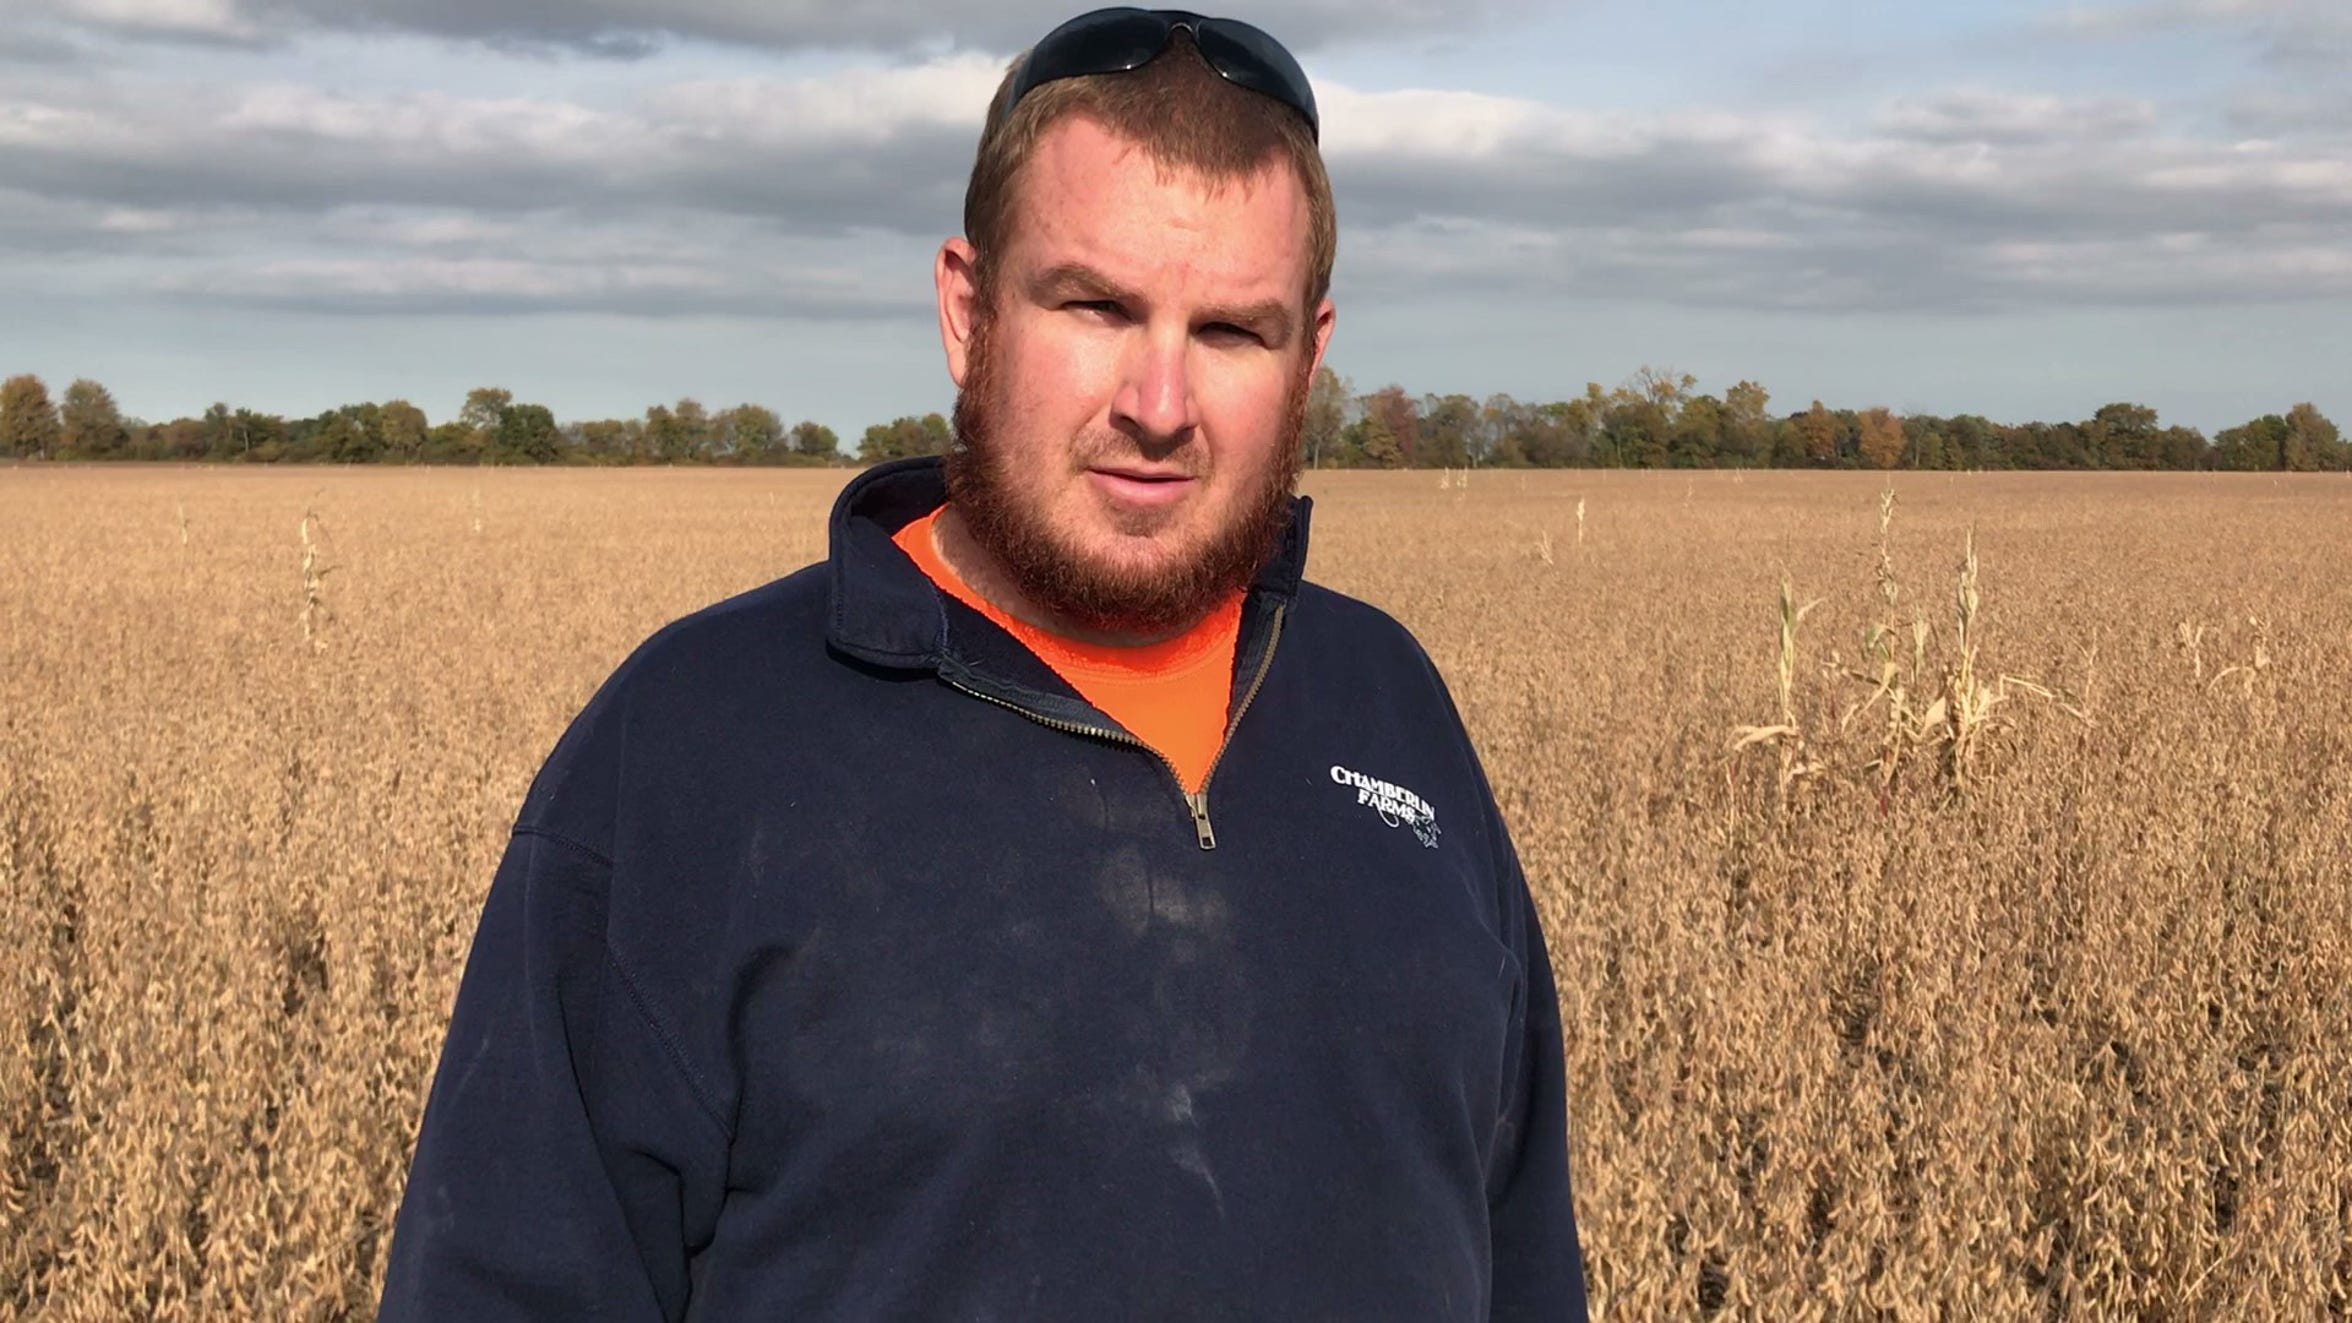 Genoa farmer Chad Gargas said some of the soybean fields he and his father, Rich, are harvesting have produced yields of only 35 bushels per acre. On an average year, those same fields would normally yield 60 bushels per acre.